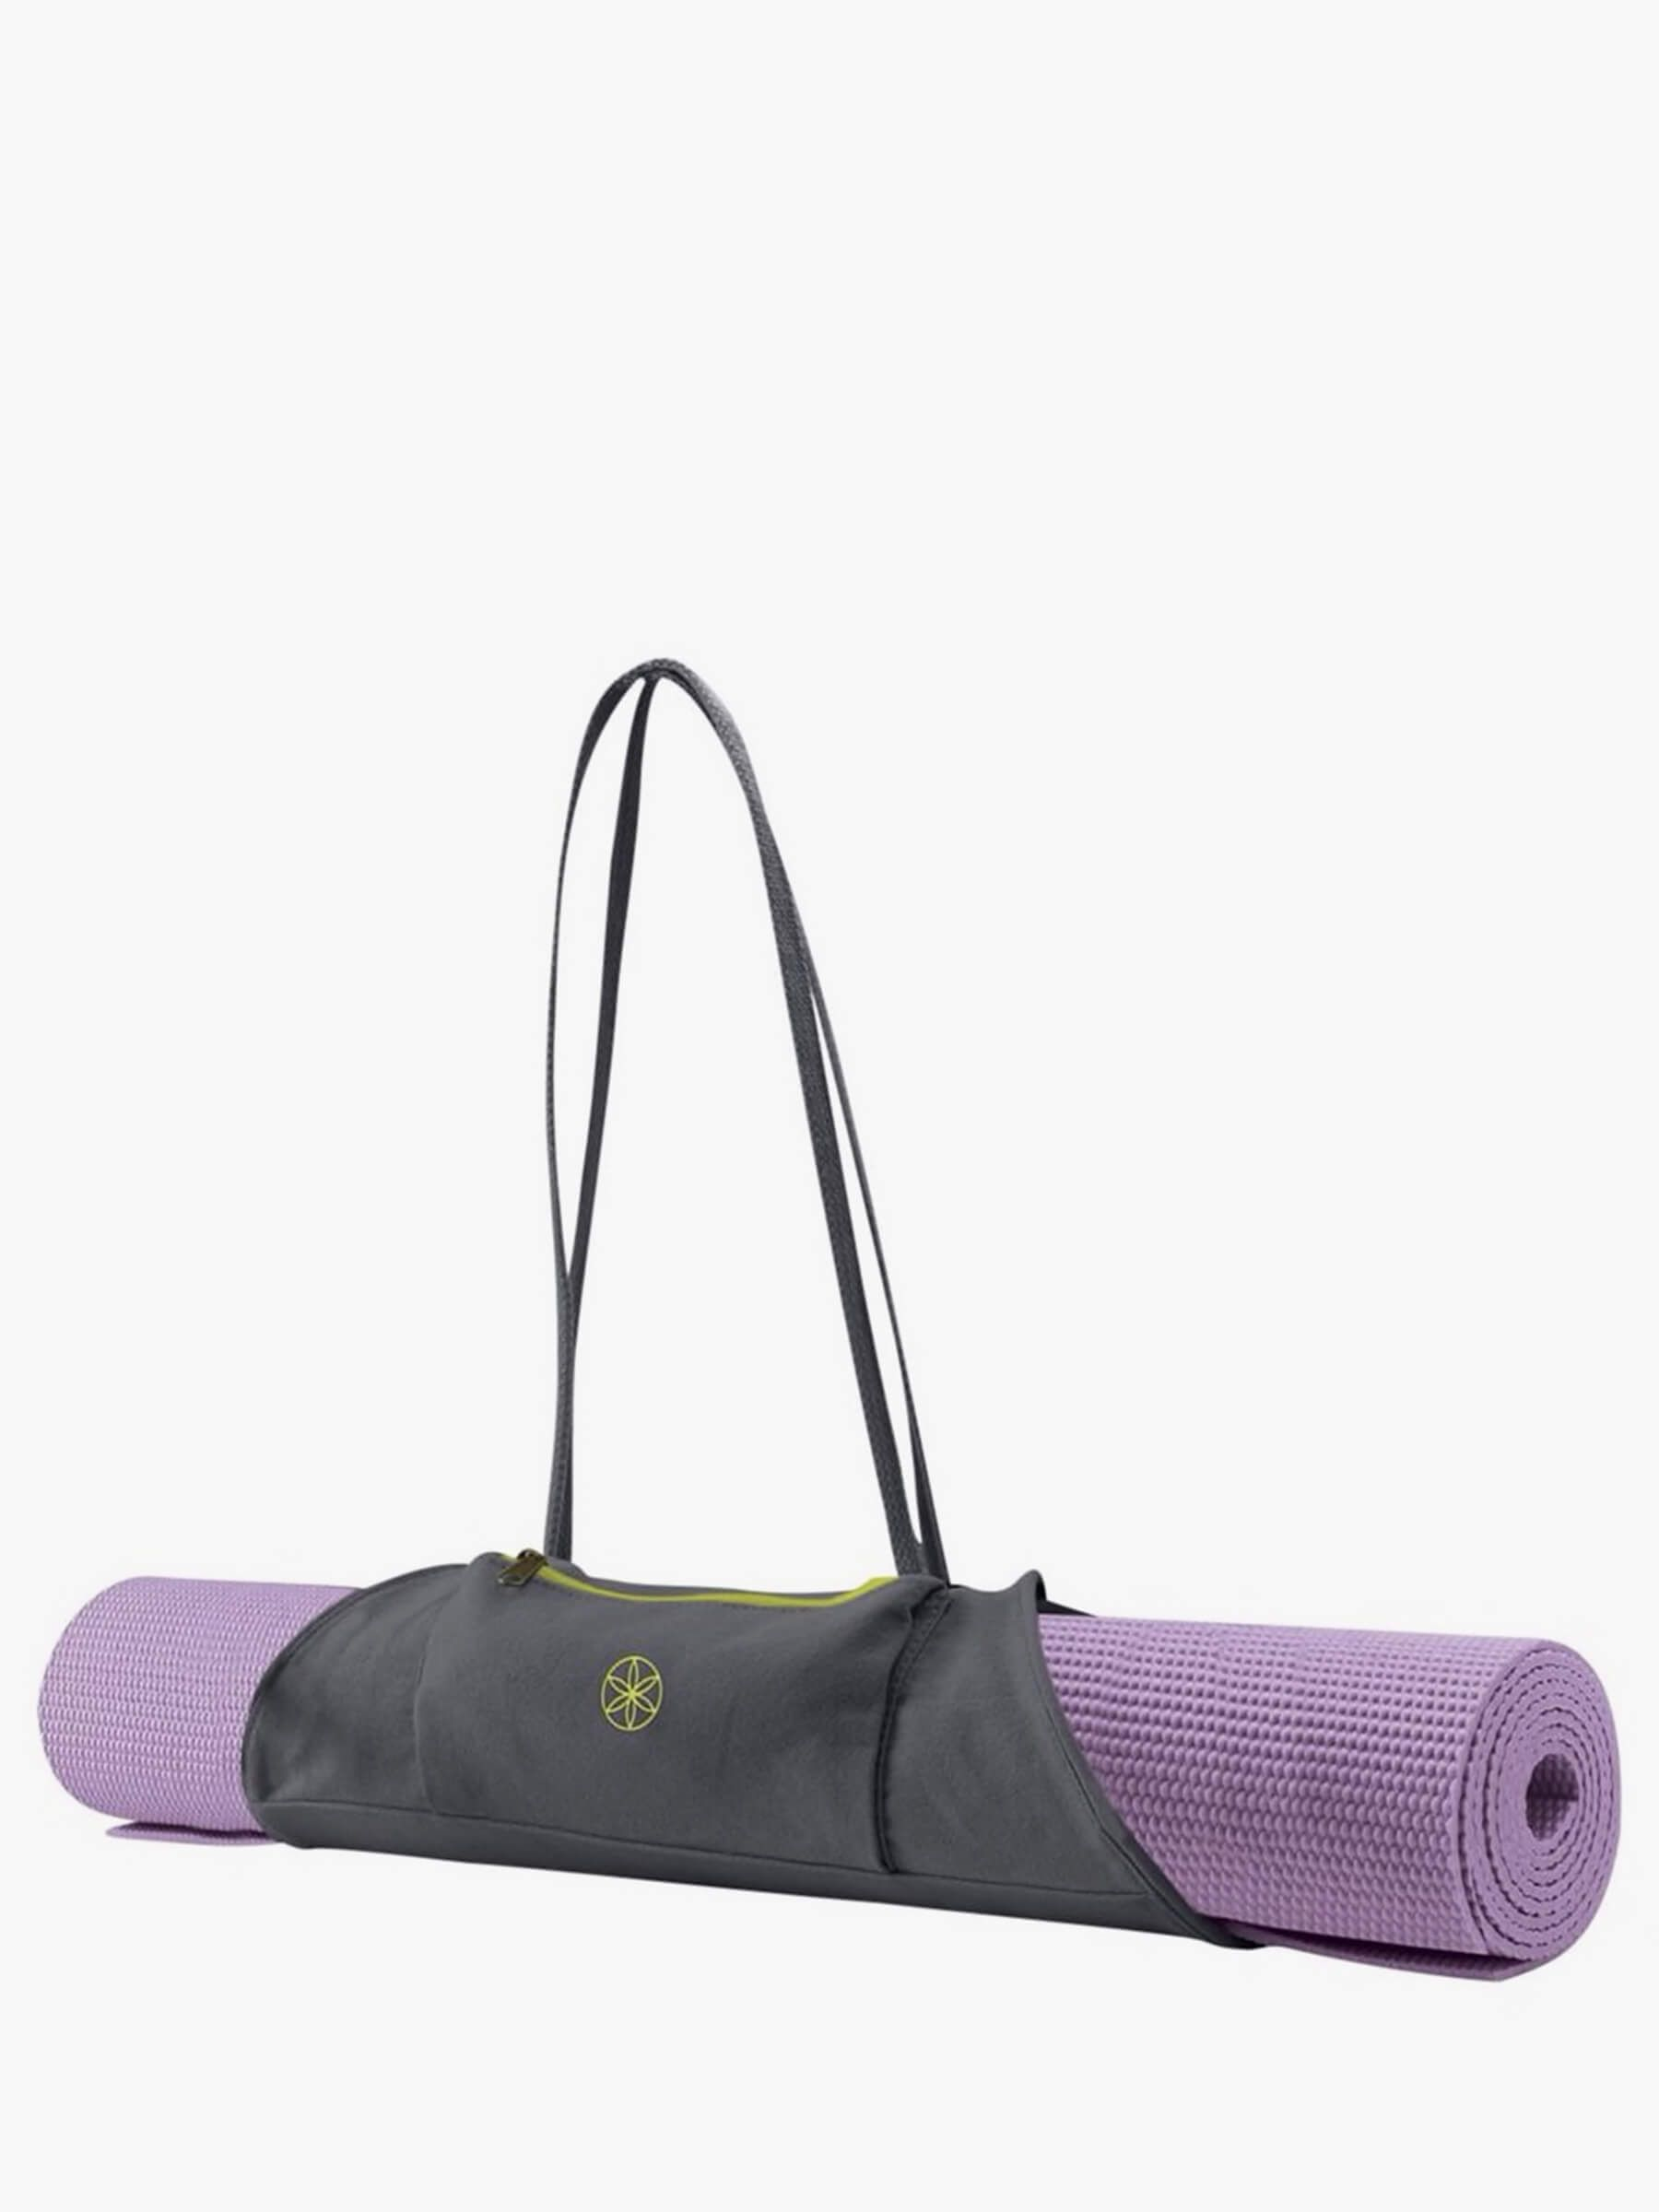 Gaiam Gaiam On-The-Go Yoga Mat Carrier, Grey/Citron